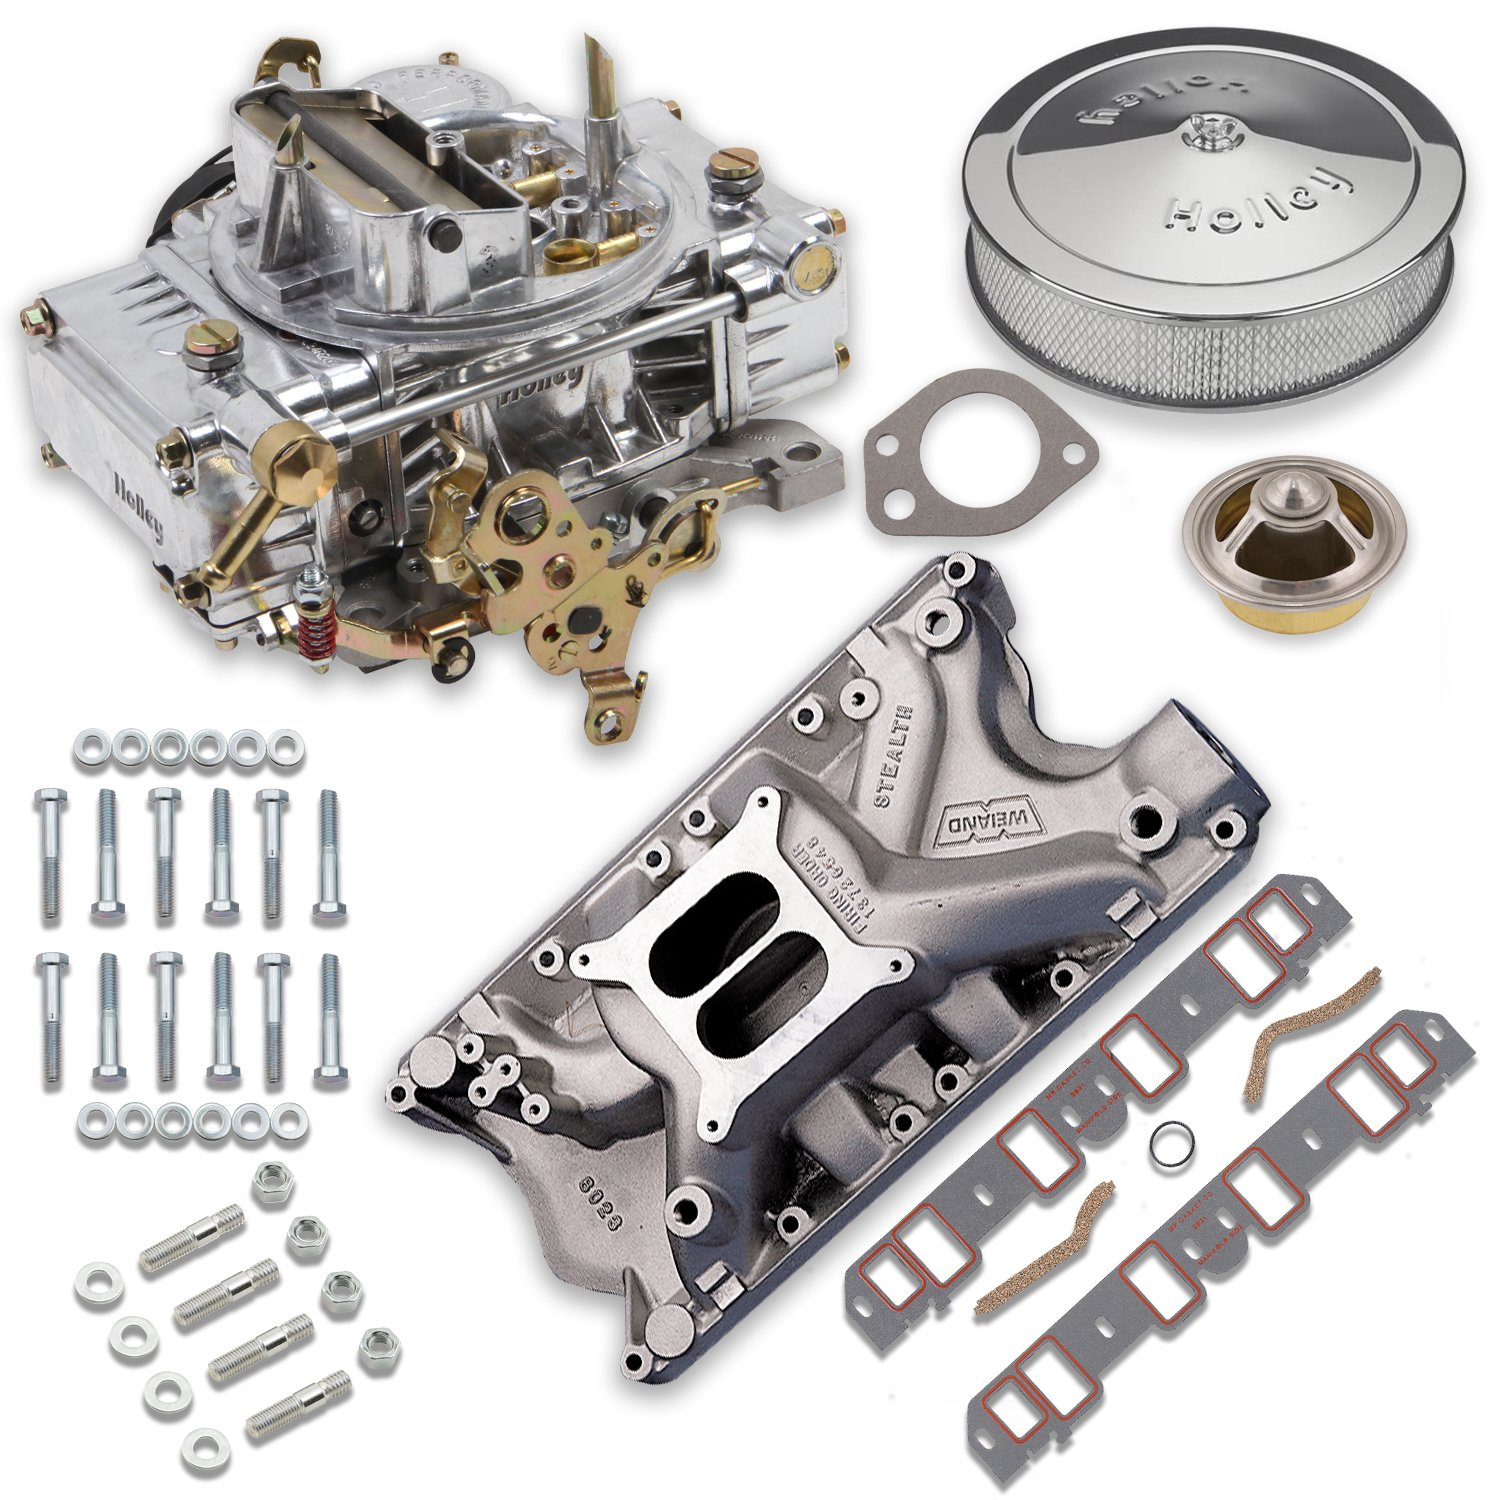 hight resolution of vk060064 750 cfm 0 80508s carburetor and ford 351w intake manifold combo image